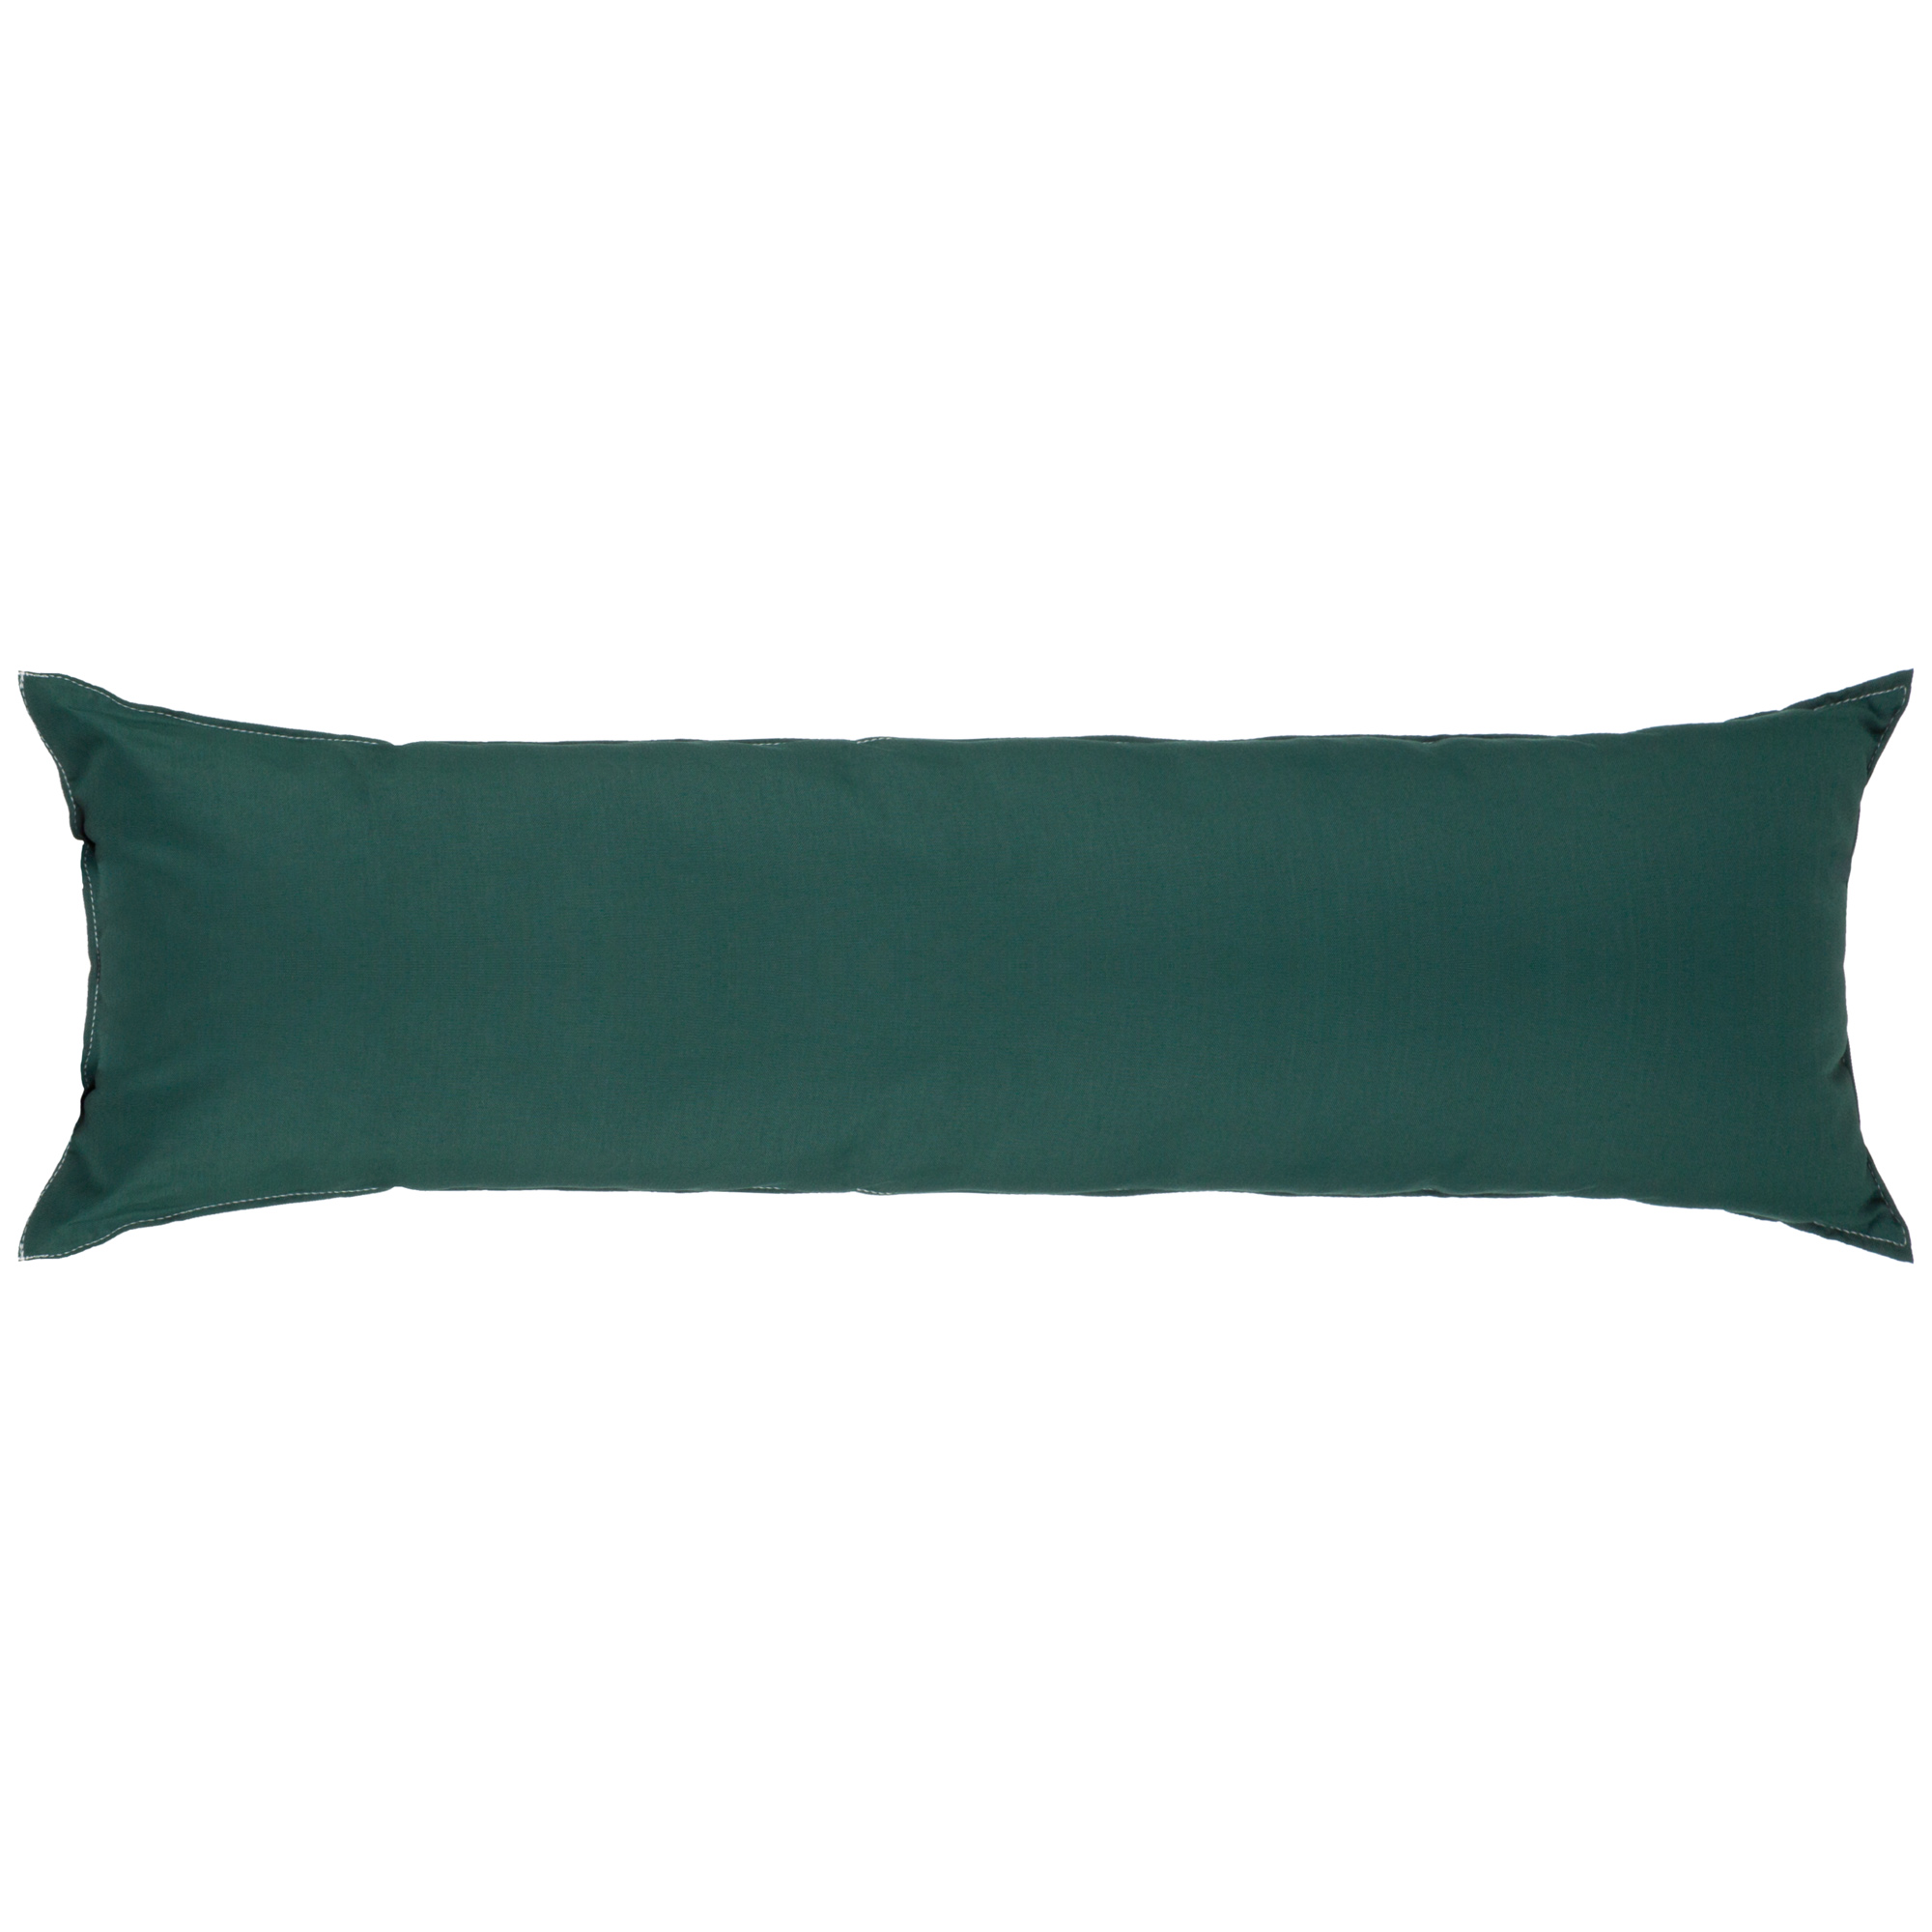 for bed green color couch of amazon concassage info dark throw set pillow target what pillows